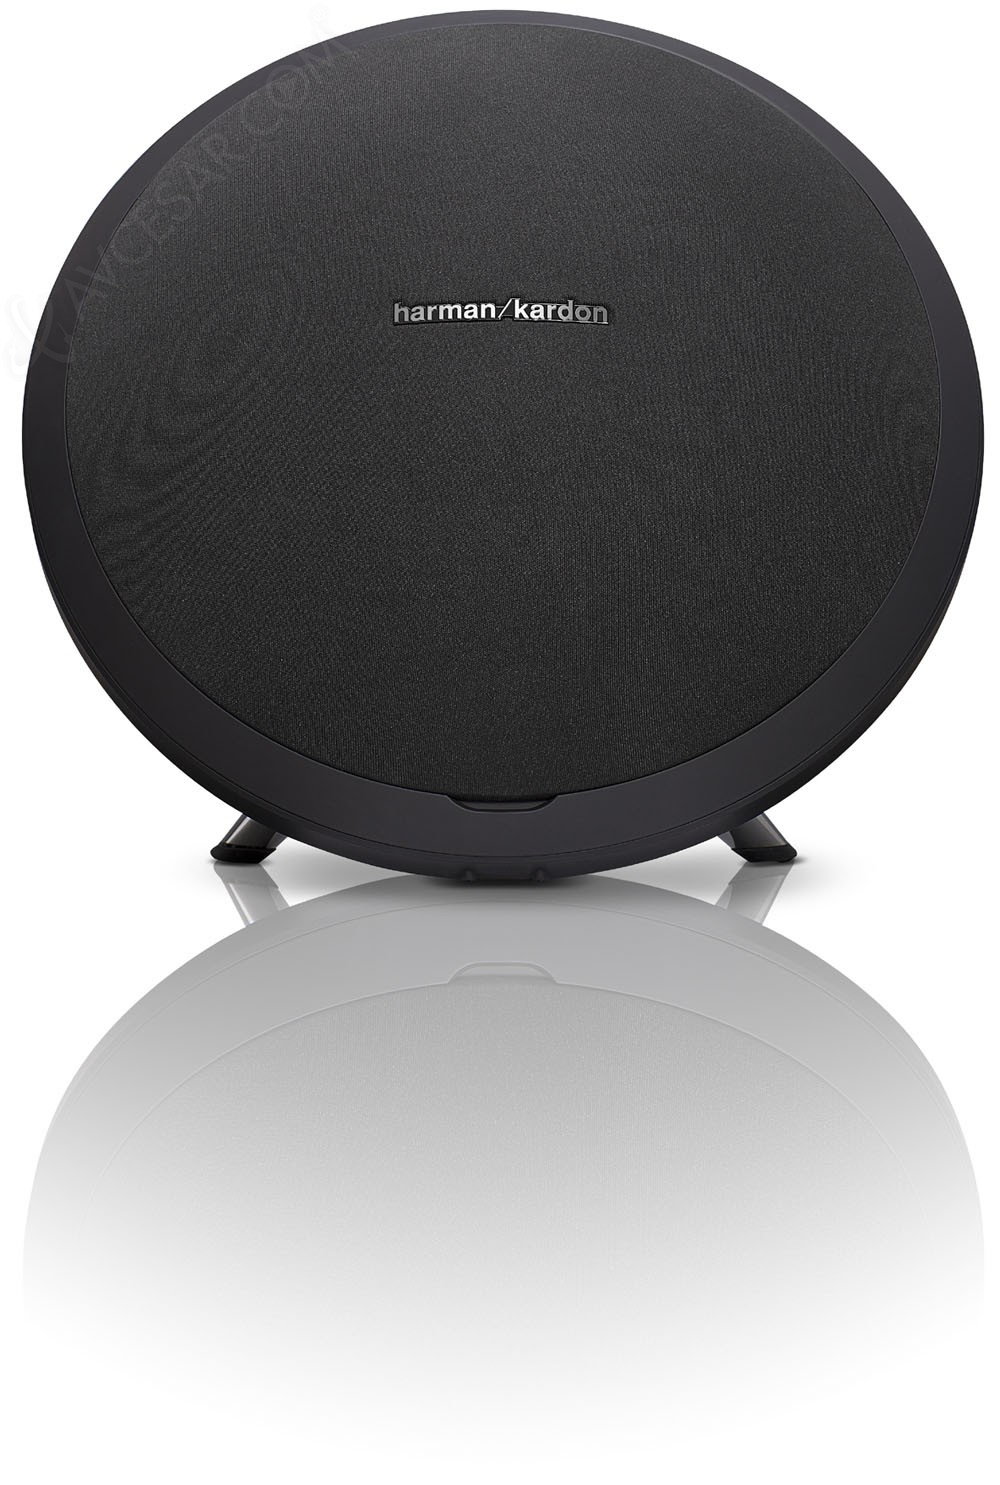 enceinte harman kardon onyx studio enceinte r seau. Black Bedroom Furniture Sets. Home Design Ideas